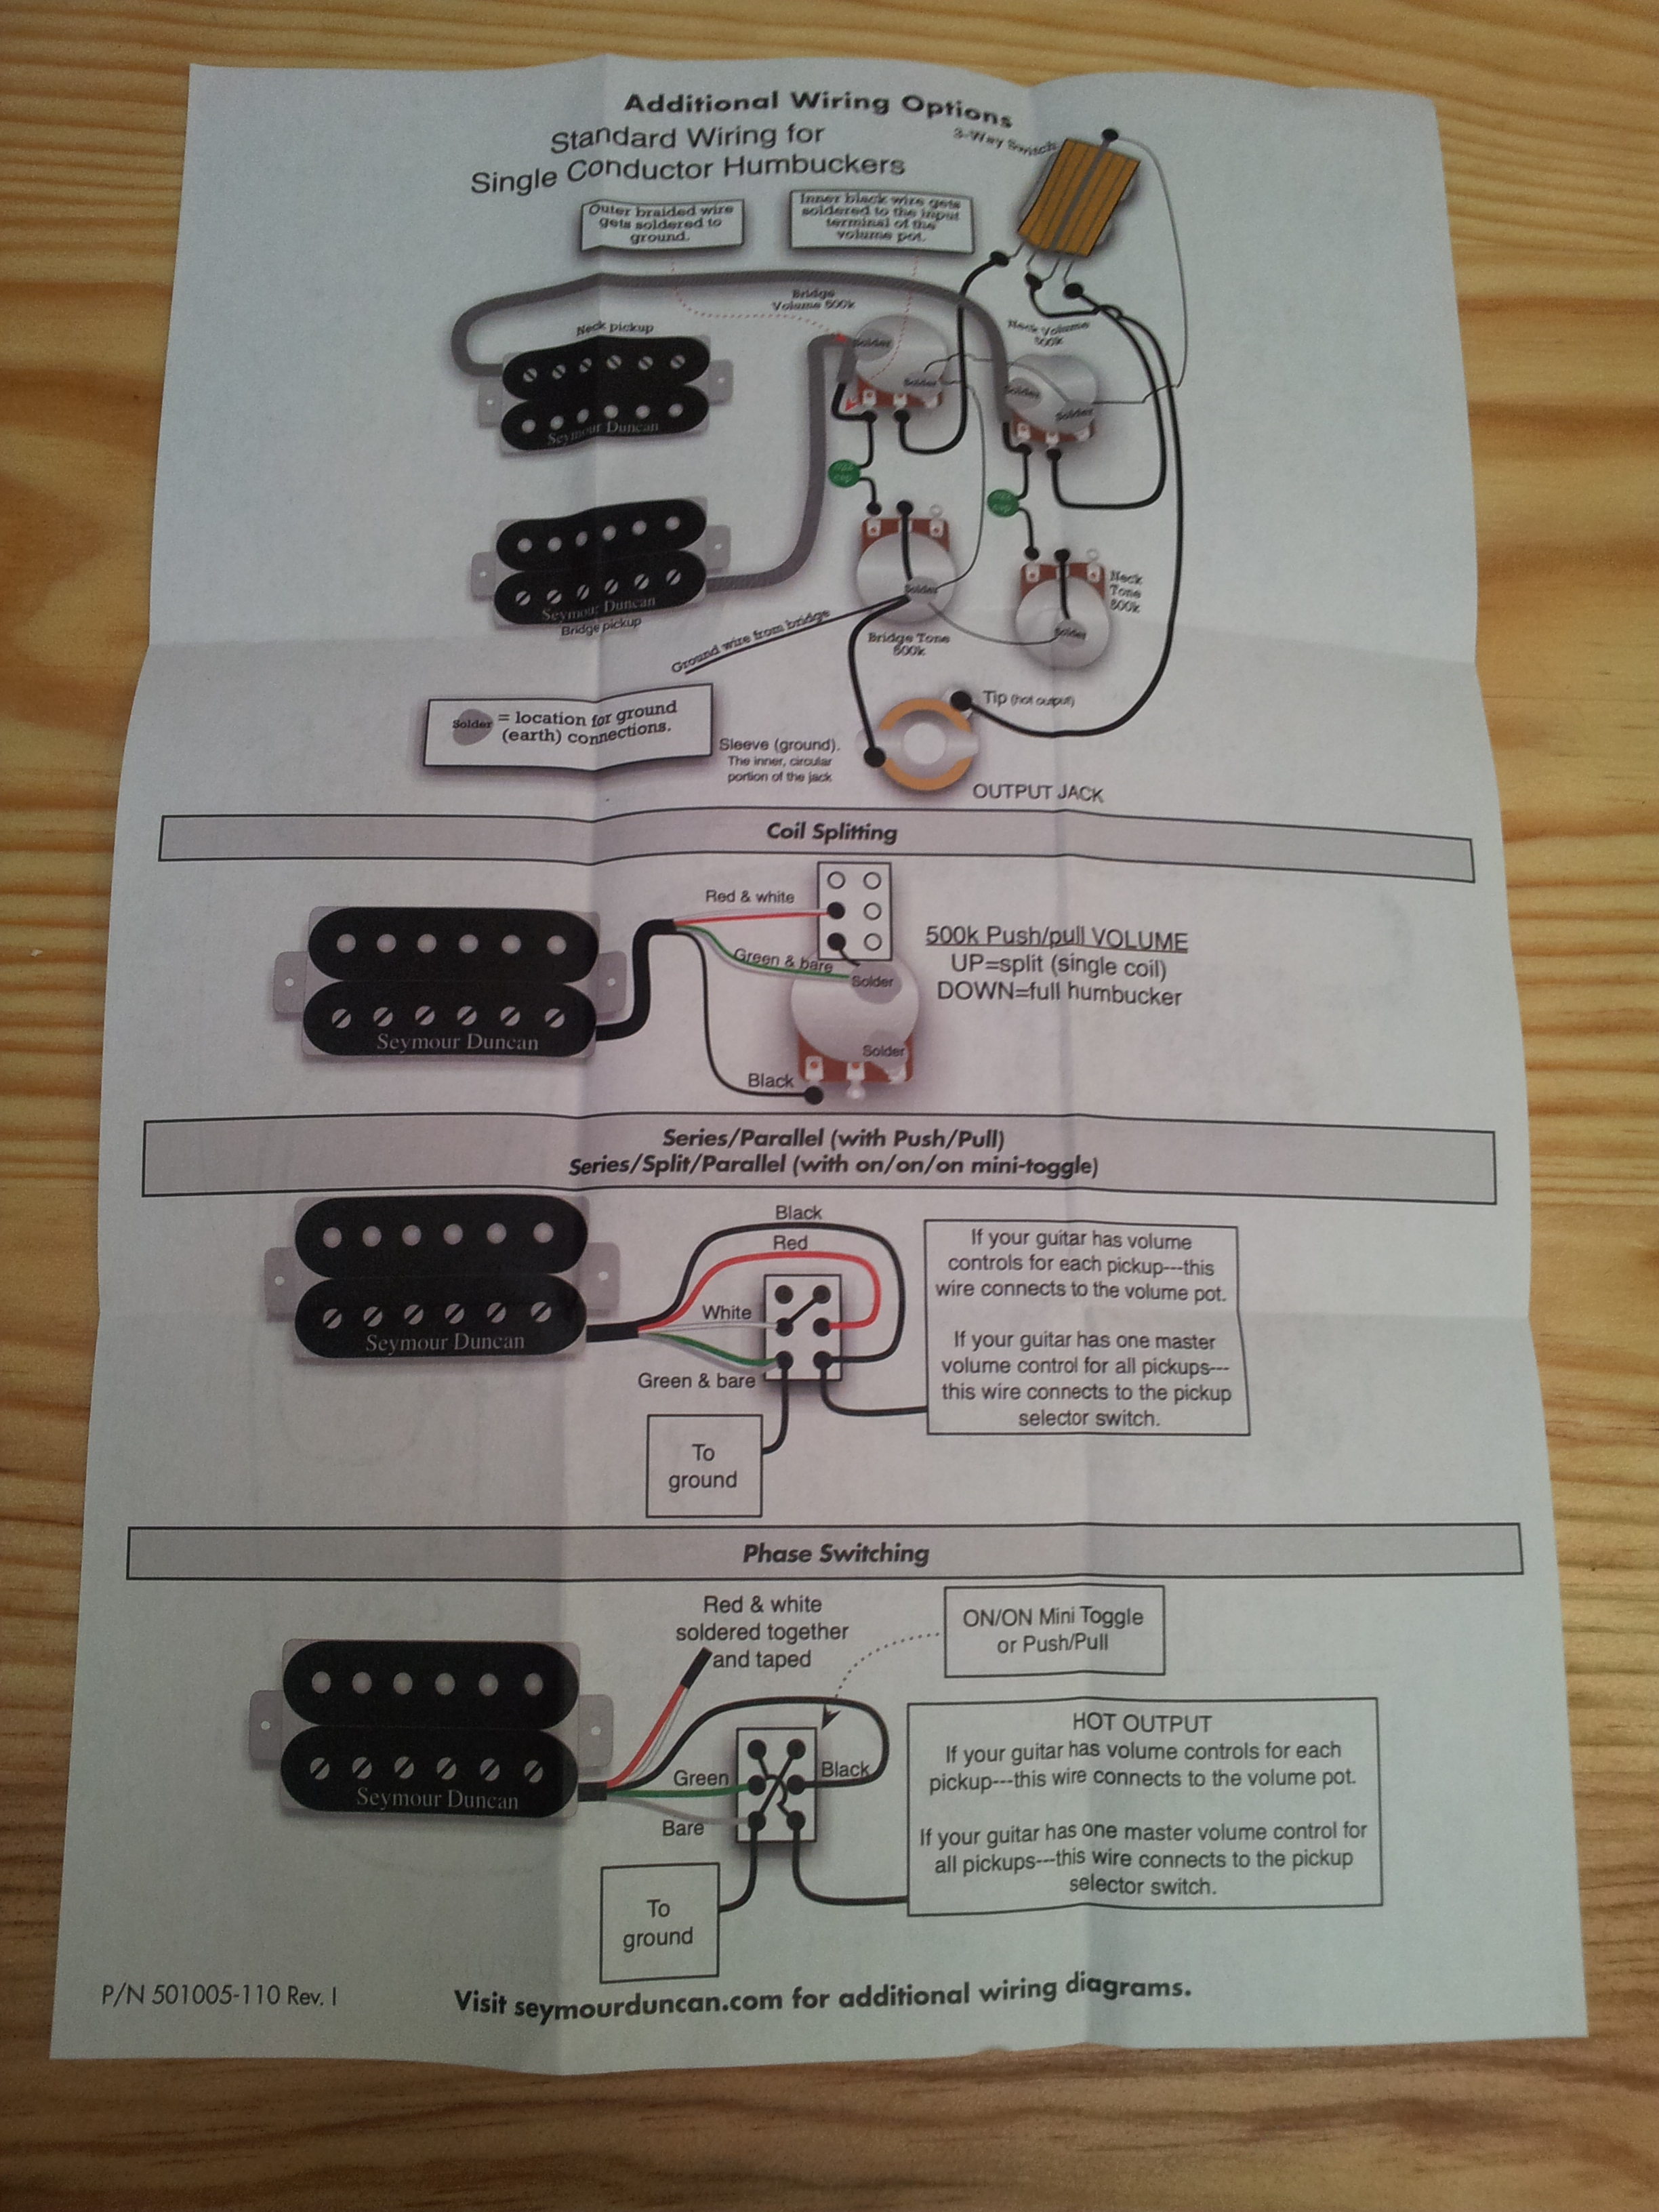 Sh 4 jb wiring diagram wiring diagram database seymour duncan sh 4 jb model black image 1560049 audiofanzine rh en audiofanzine com seymour duncan sh 4 jb wiring diagram 3 way switch wiring diagram cheapraybanclubmaster